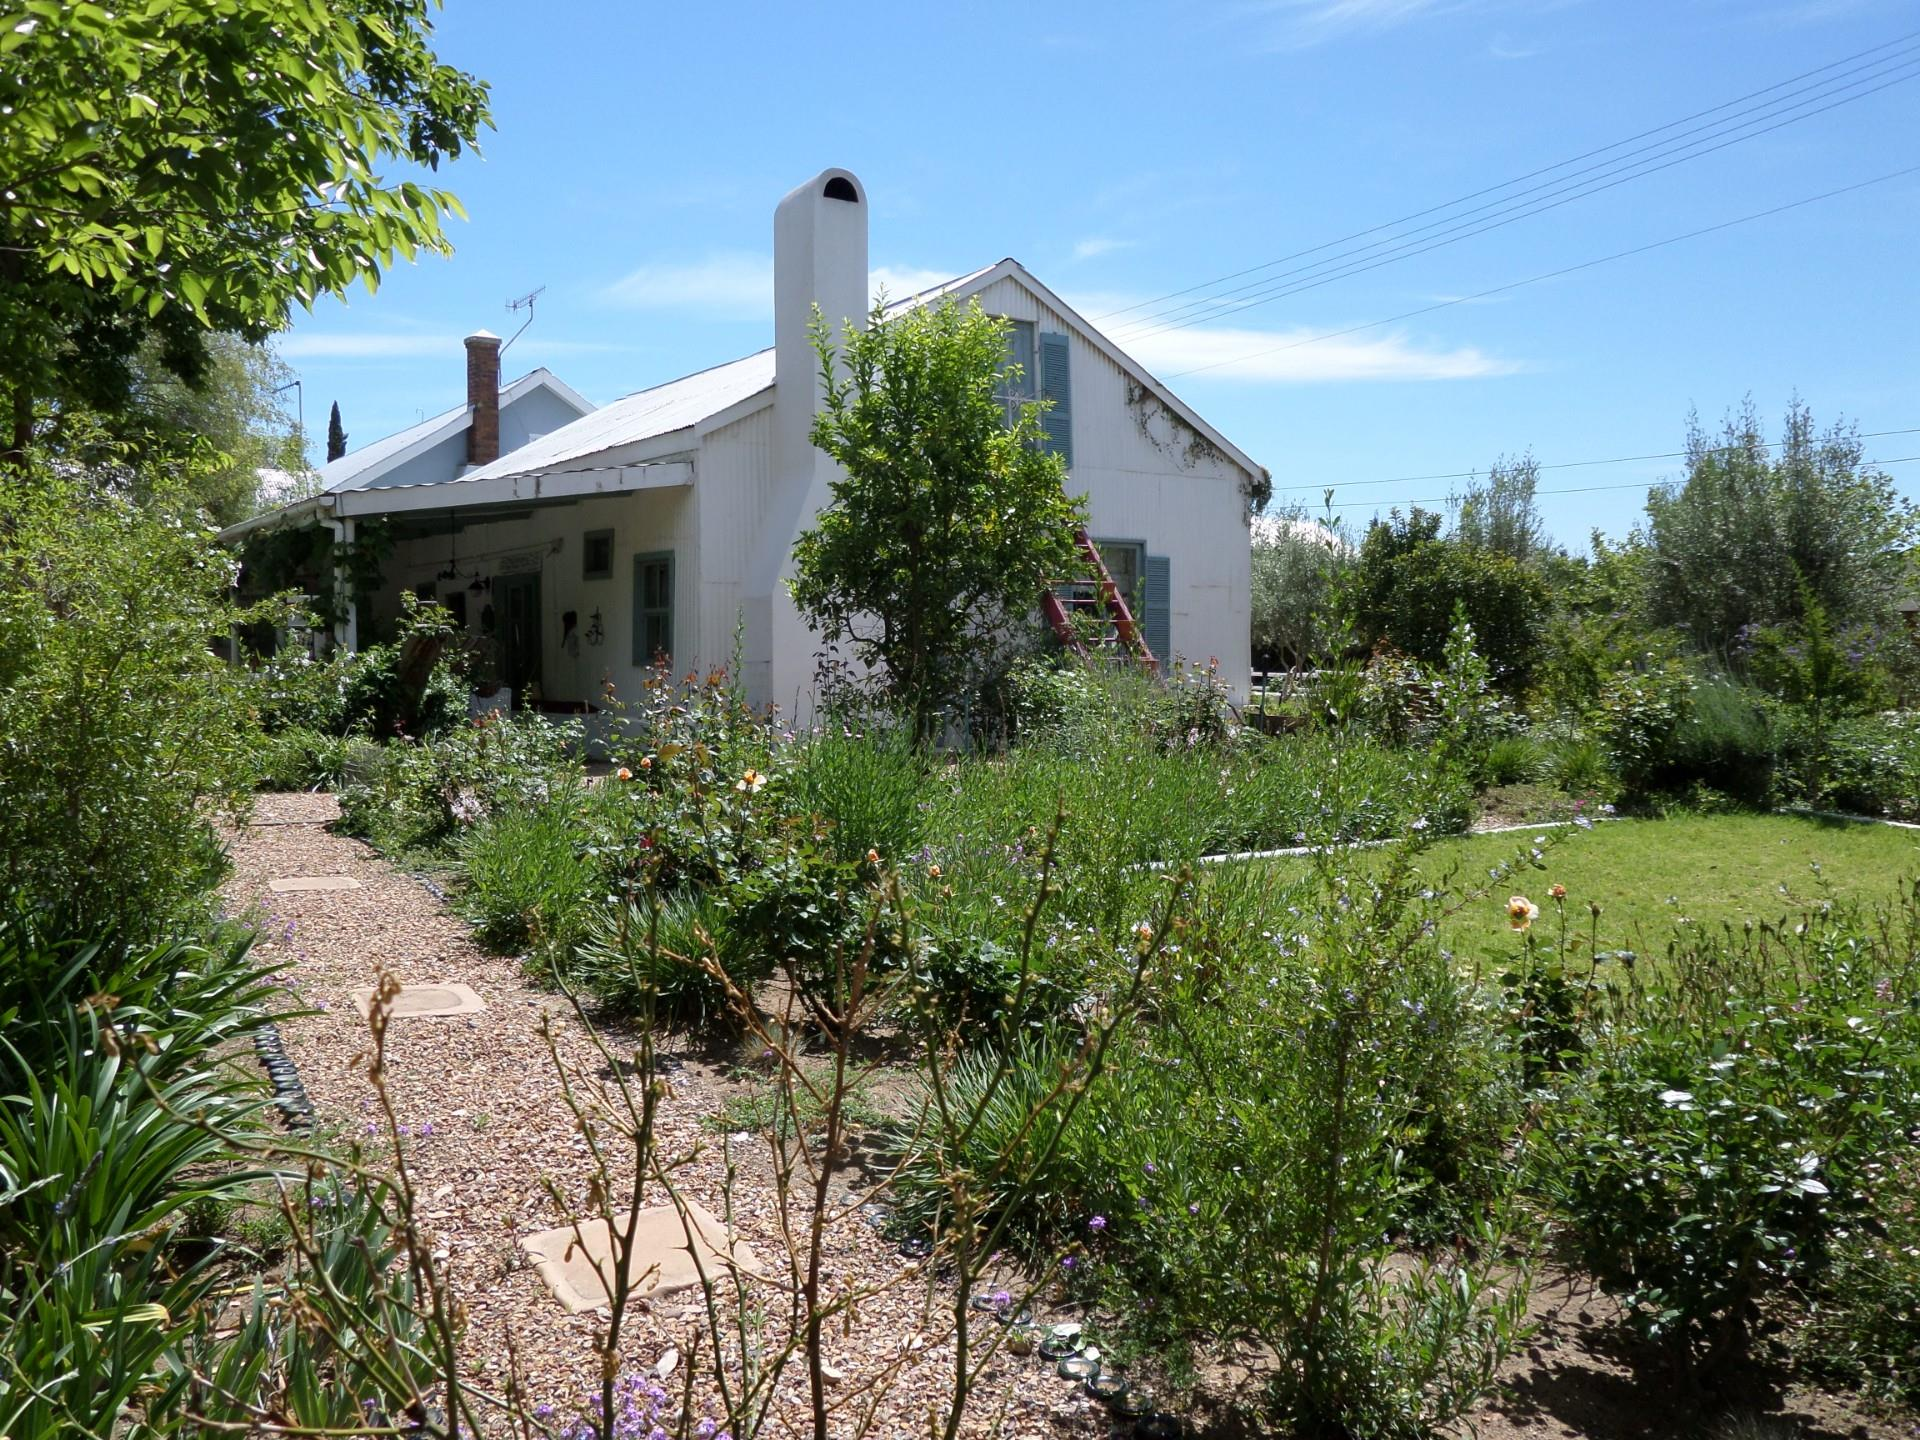 3 Bedroom House For Sale in Riebeek Kasteel